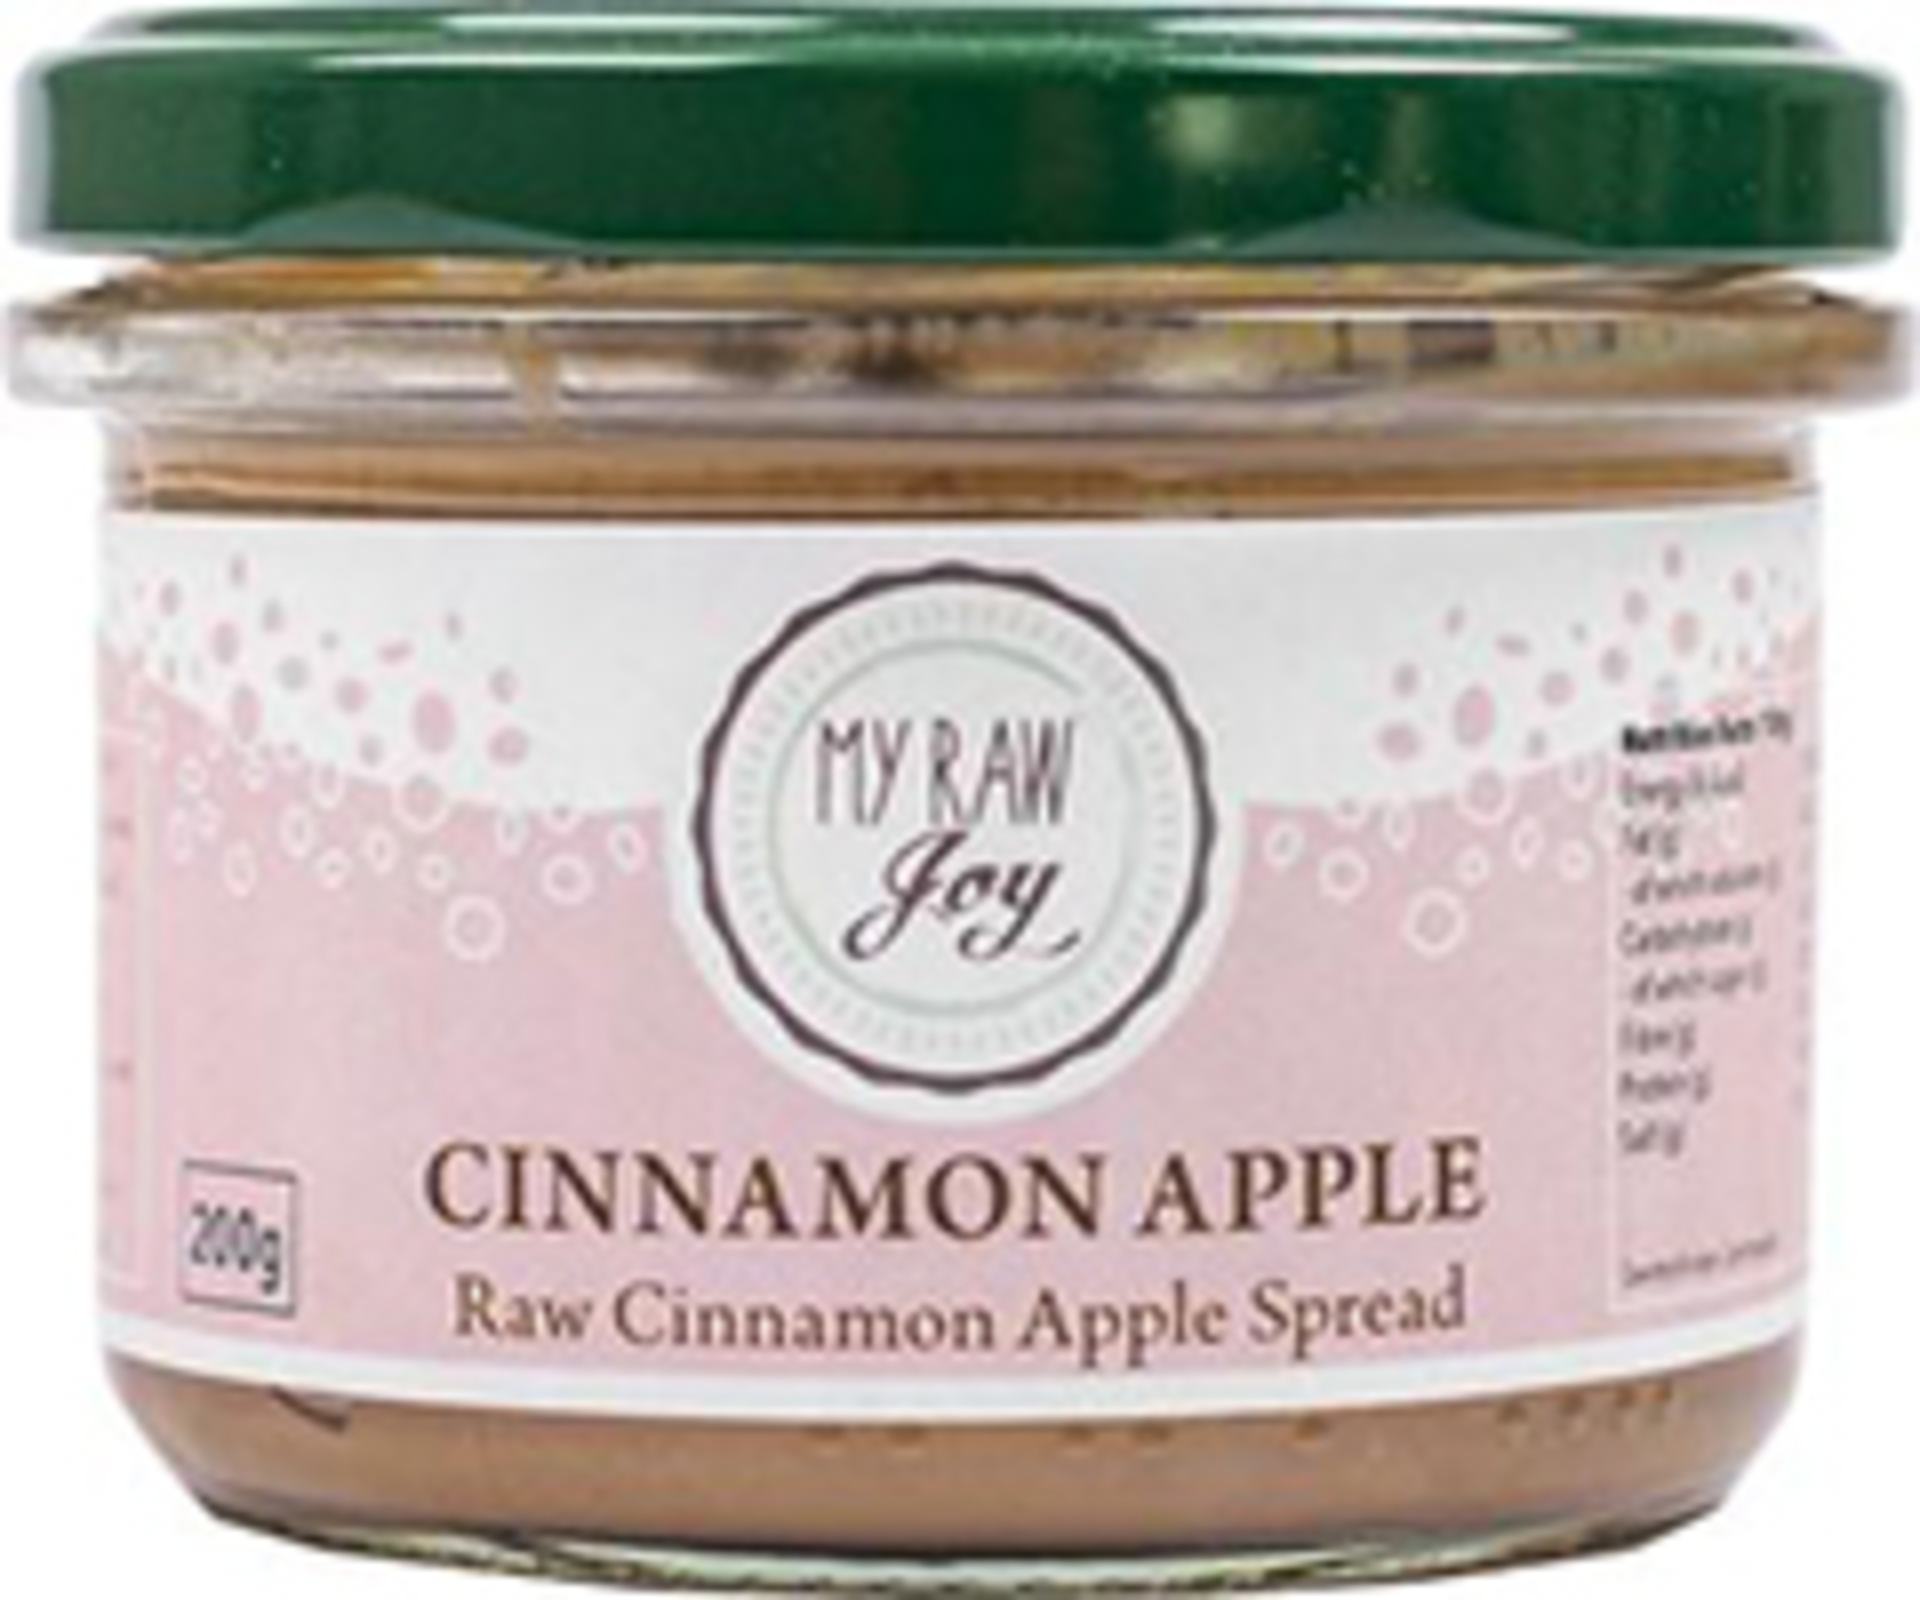 My Raw Joy Cinnamon/apple spread 200 g